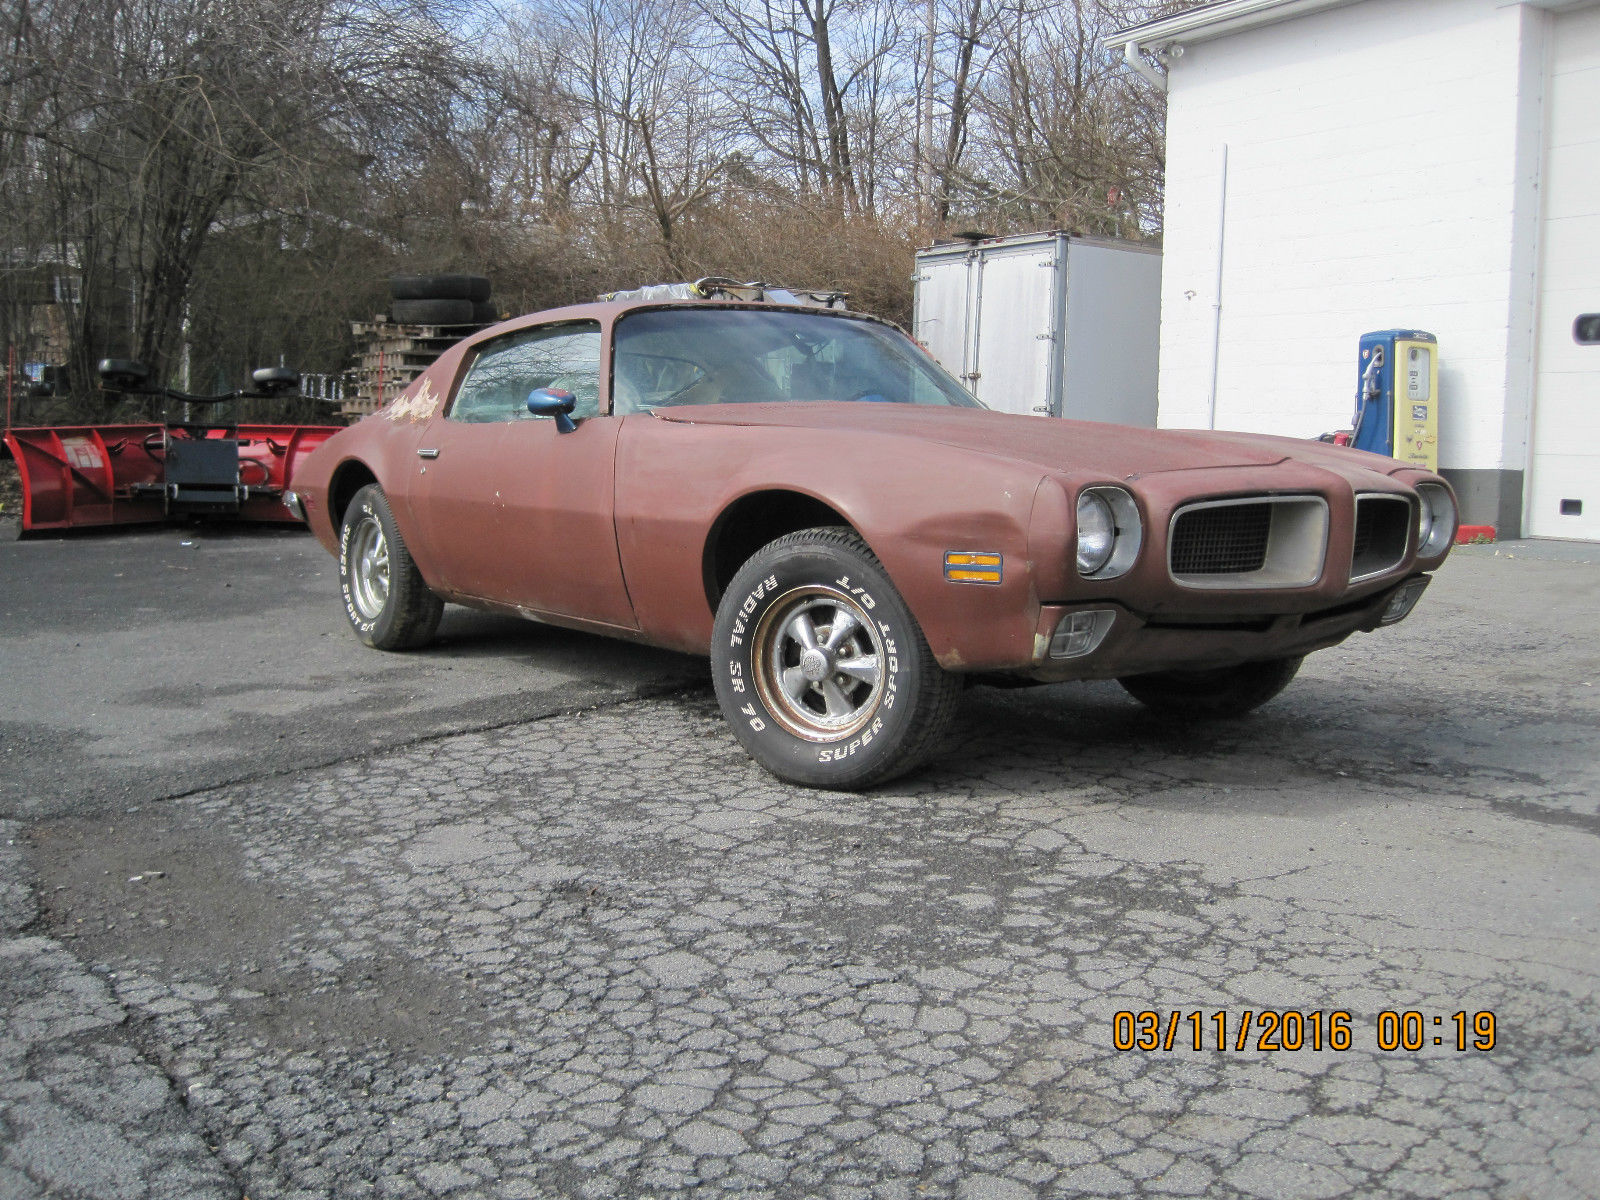 1972 Pontiac Firebird Trans Am Project Car For Sale